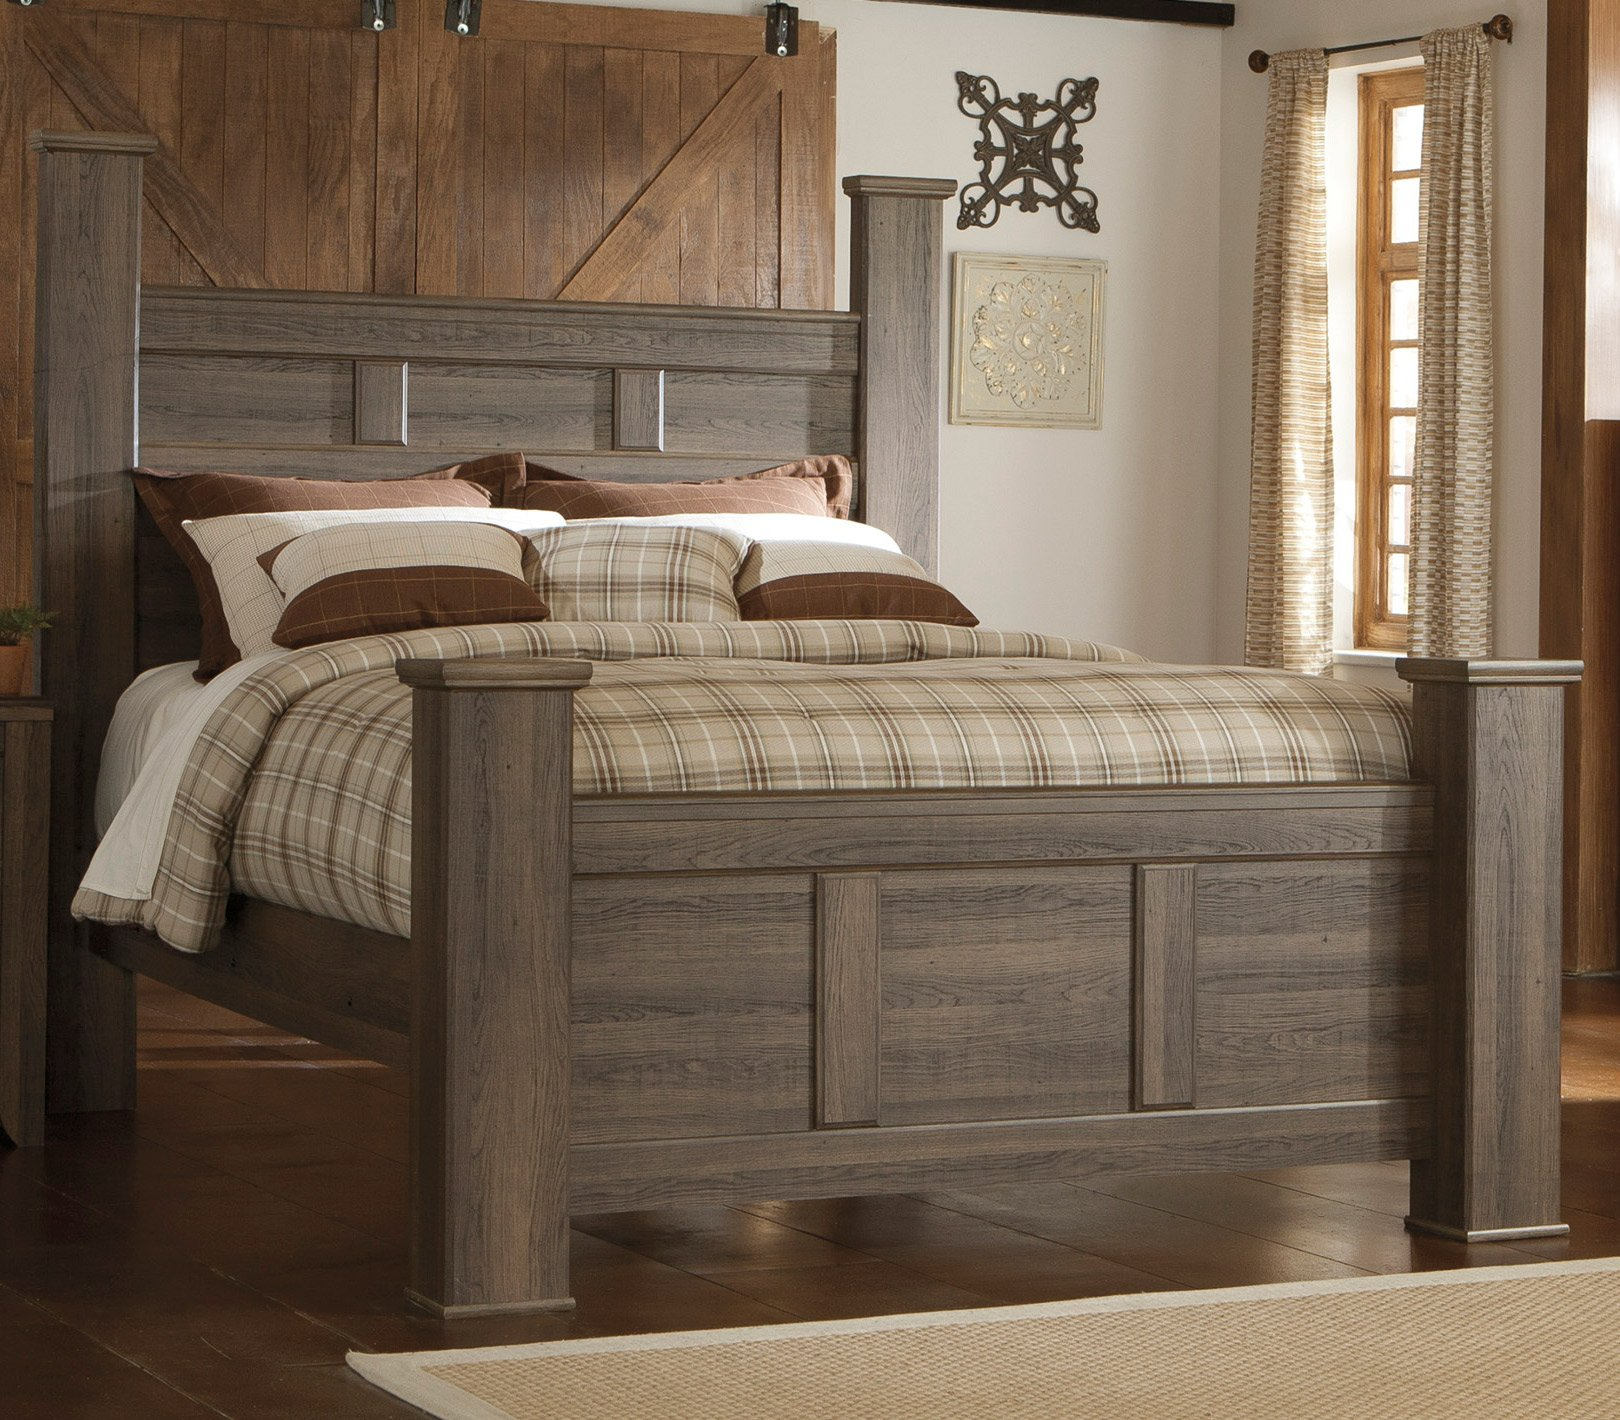 Driftwood rustic modern 6 piece king bedroom set fairfax - Contemporary king bedroom furniture ...